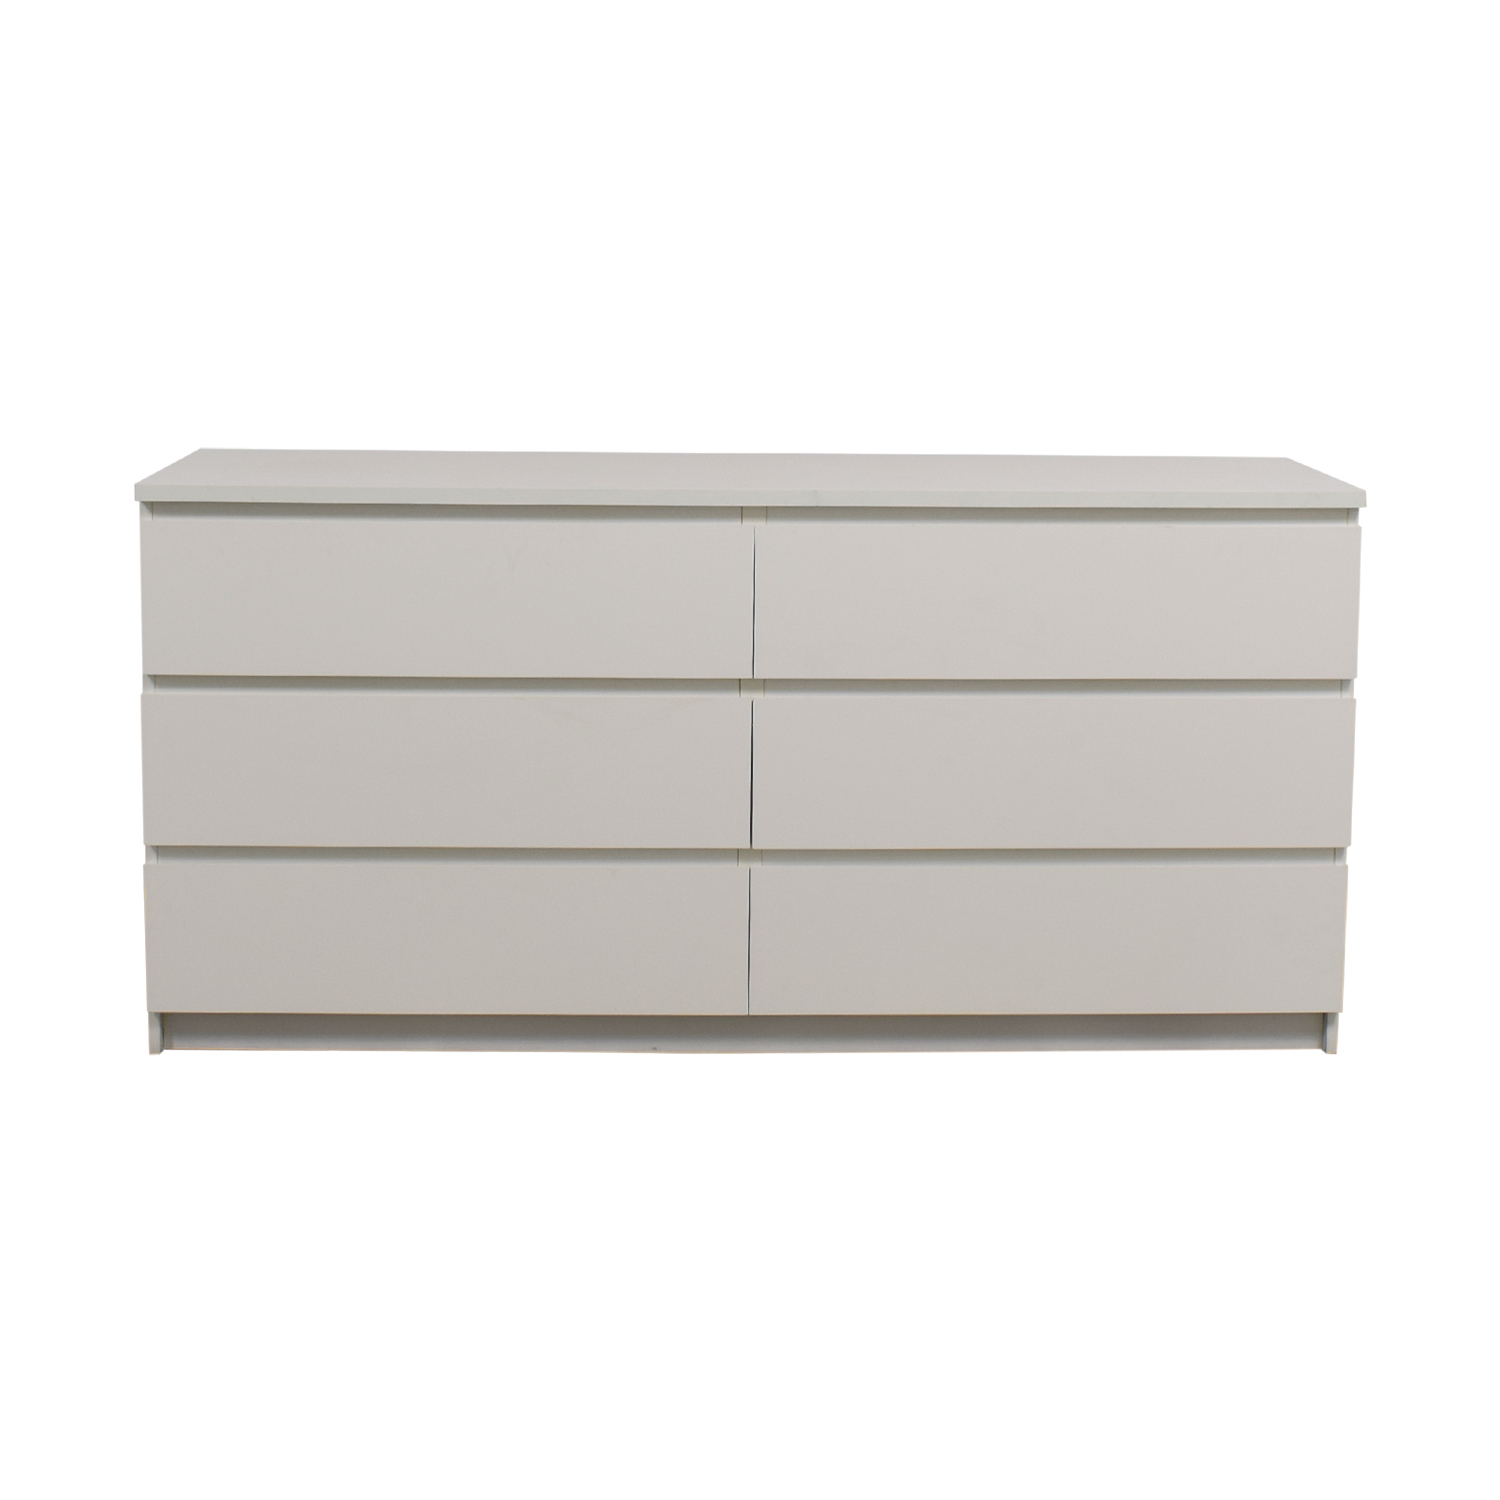 IKEA IKEA Six-Drawer White Dresser